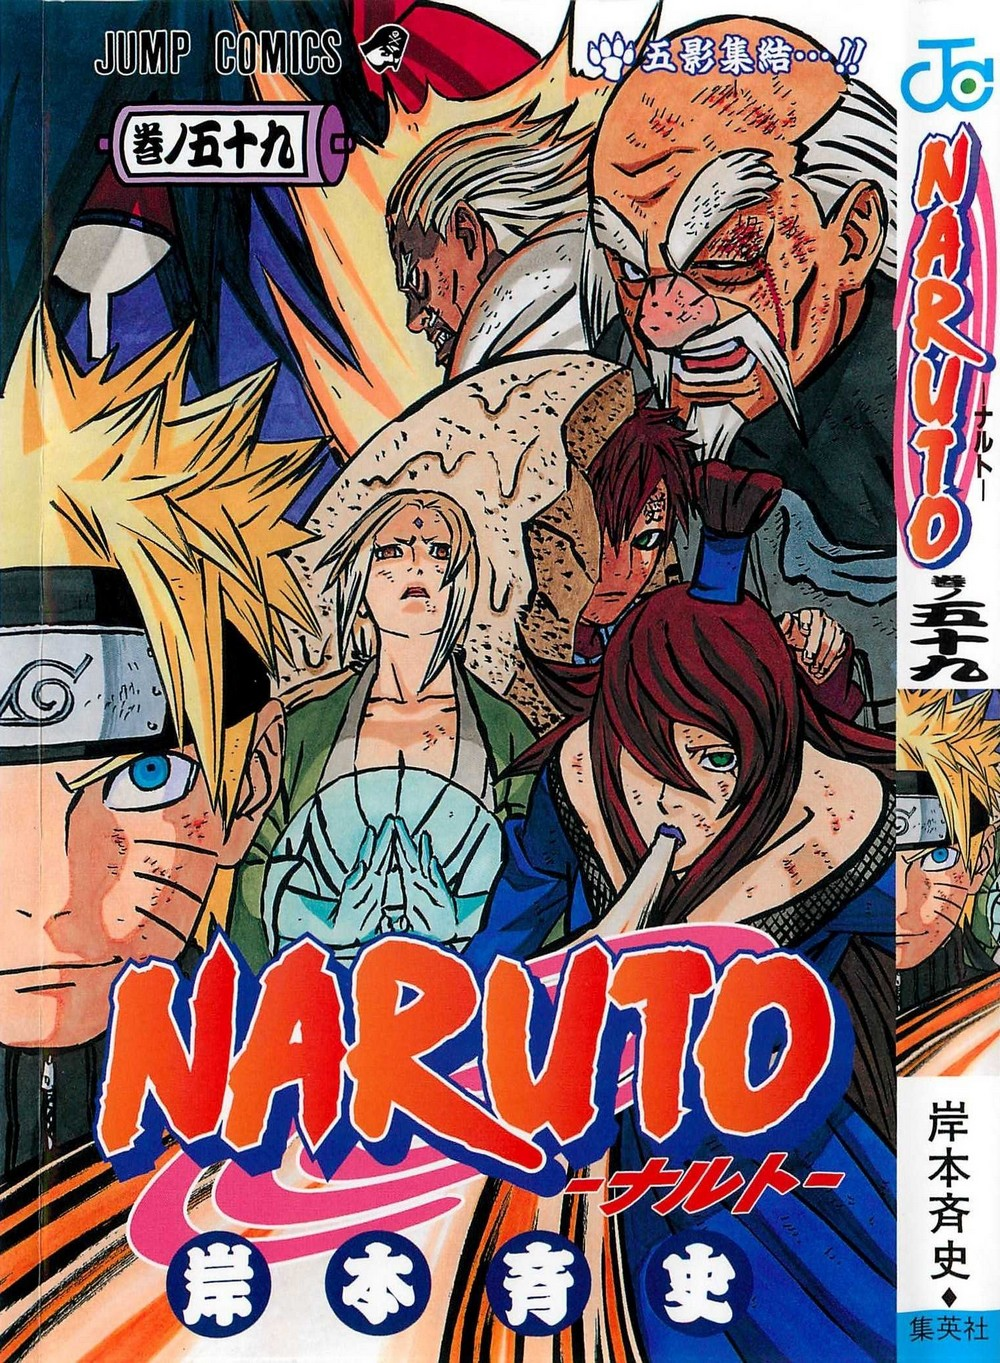 Couvertures Naruto 526256aaxoviDG